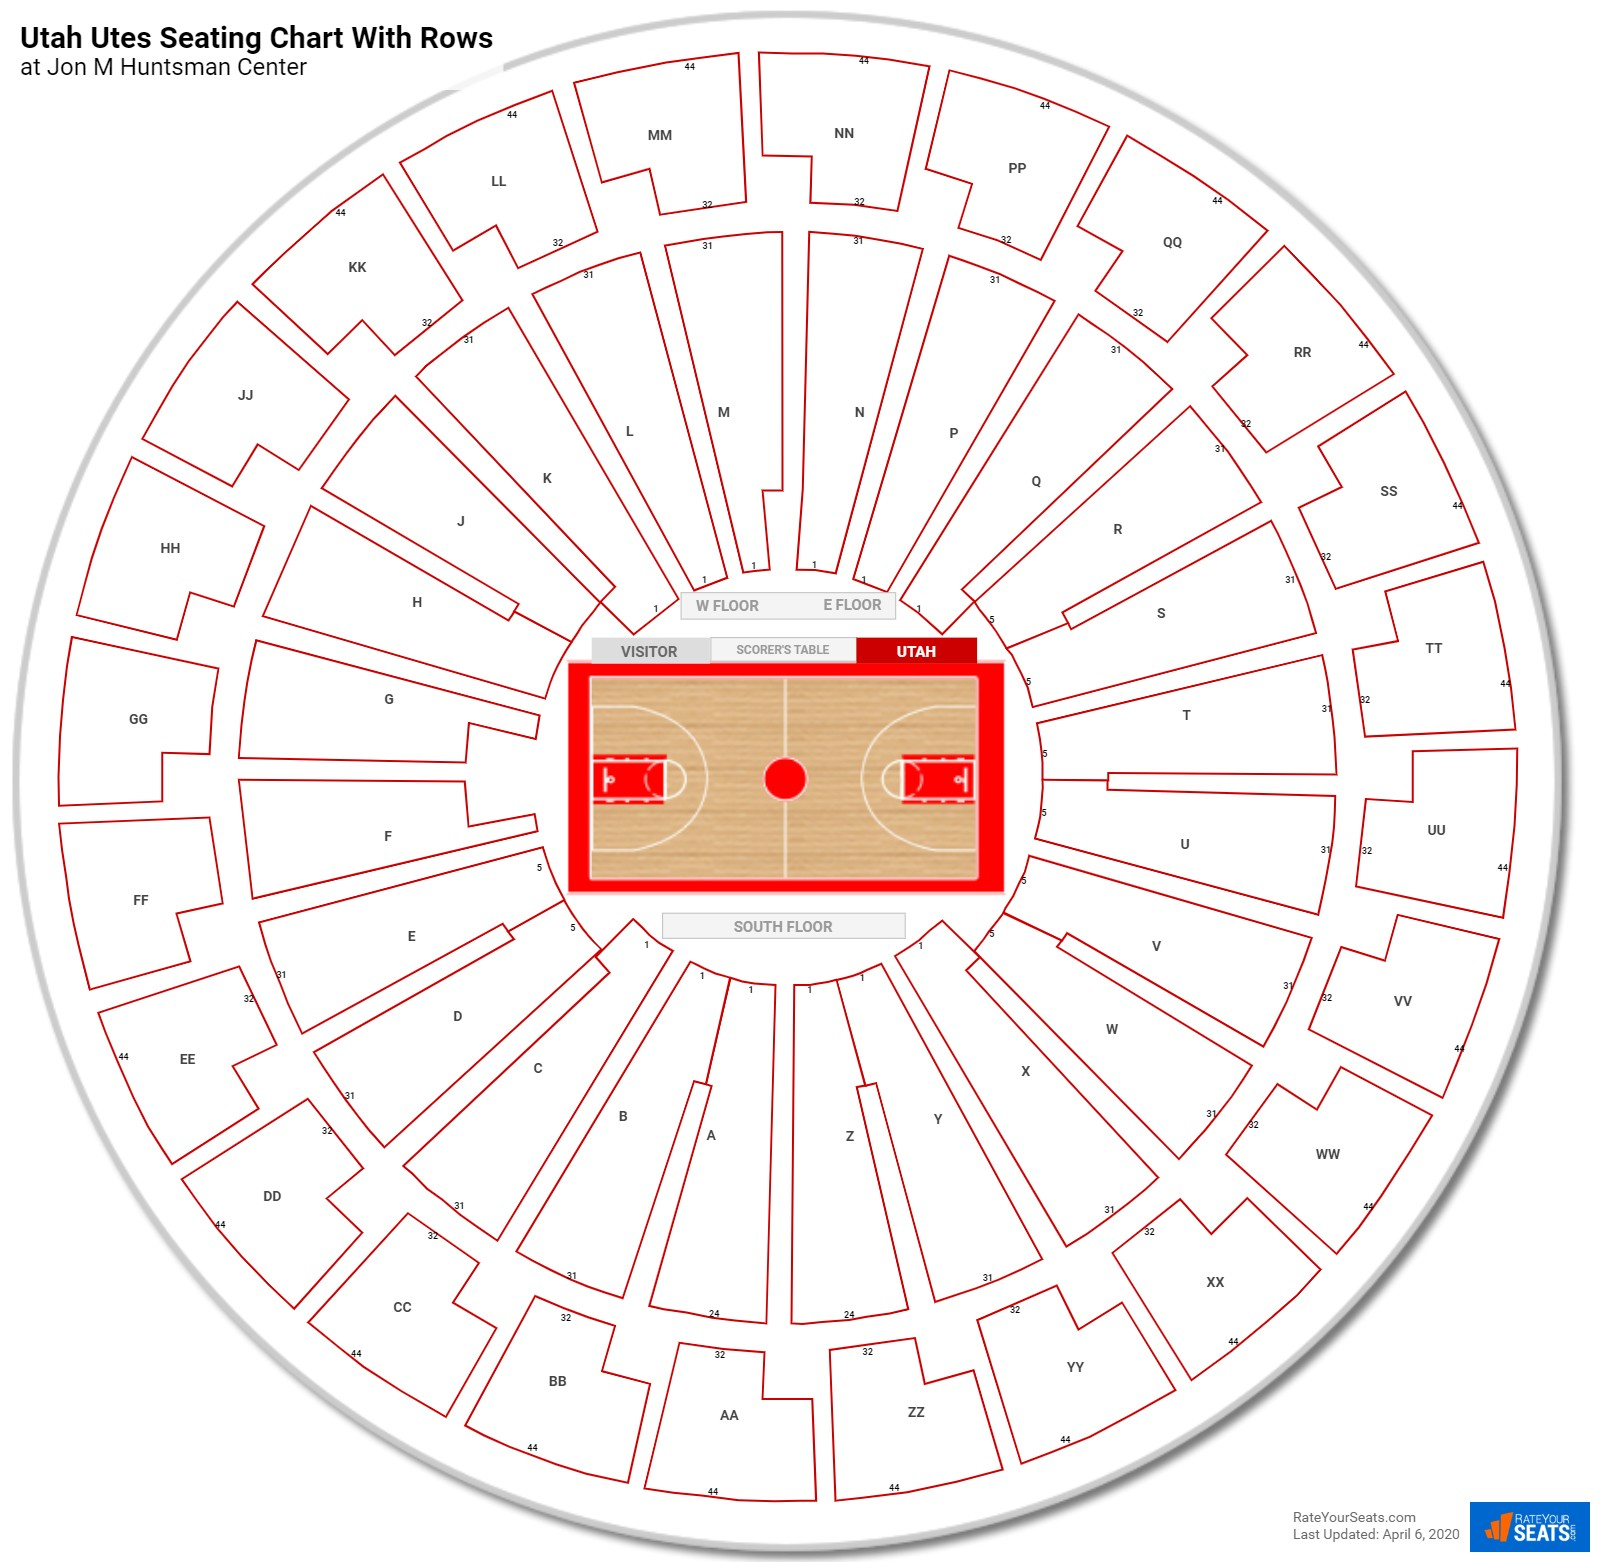 Jon M Huntsman Center seating chart with rows